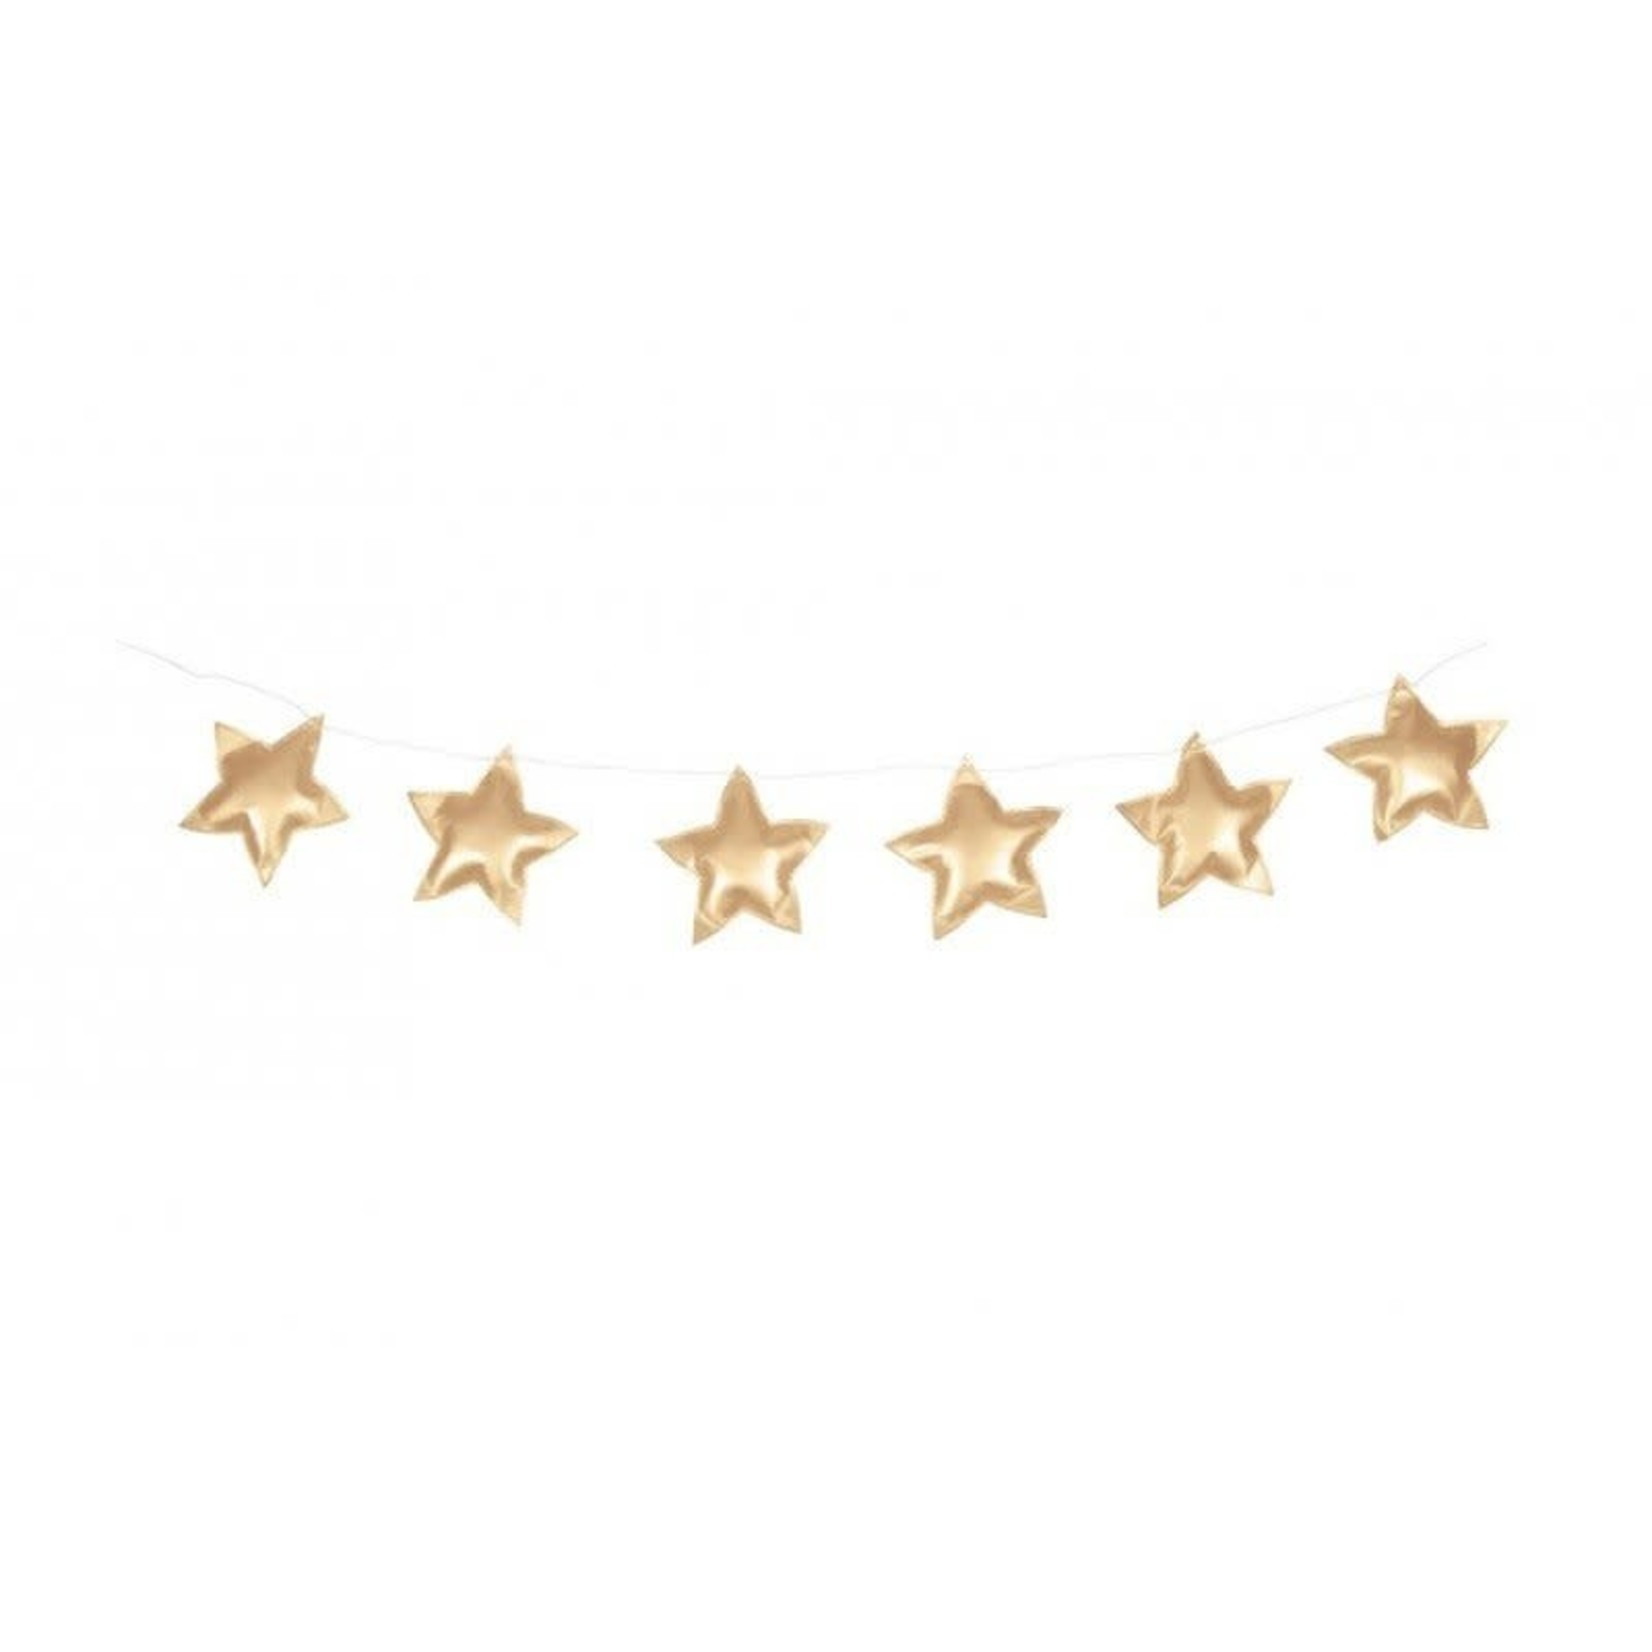 Cotton & Sweets Star Garland - Gold